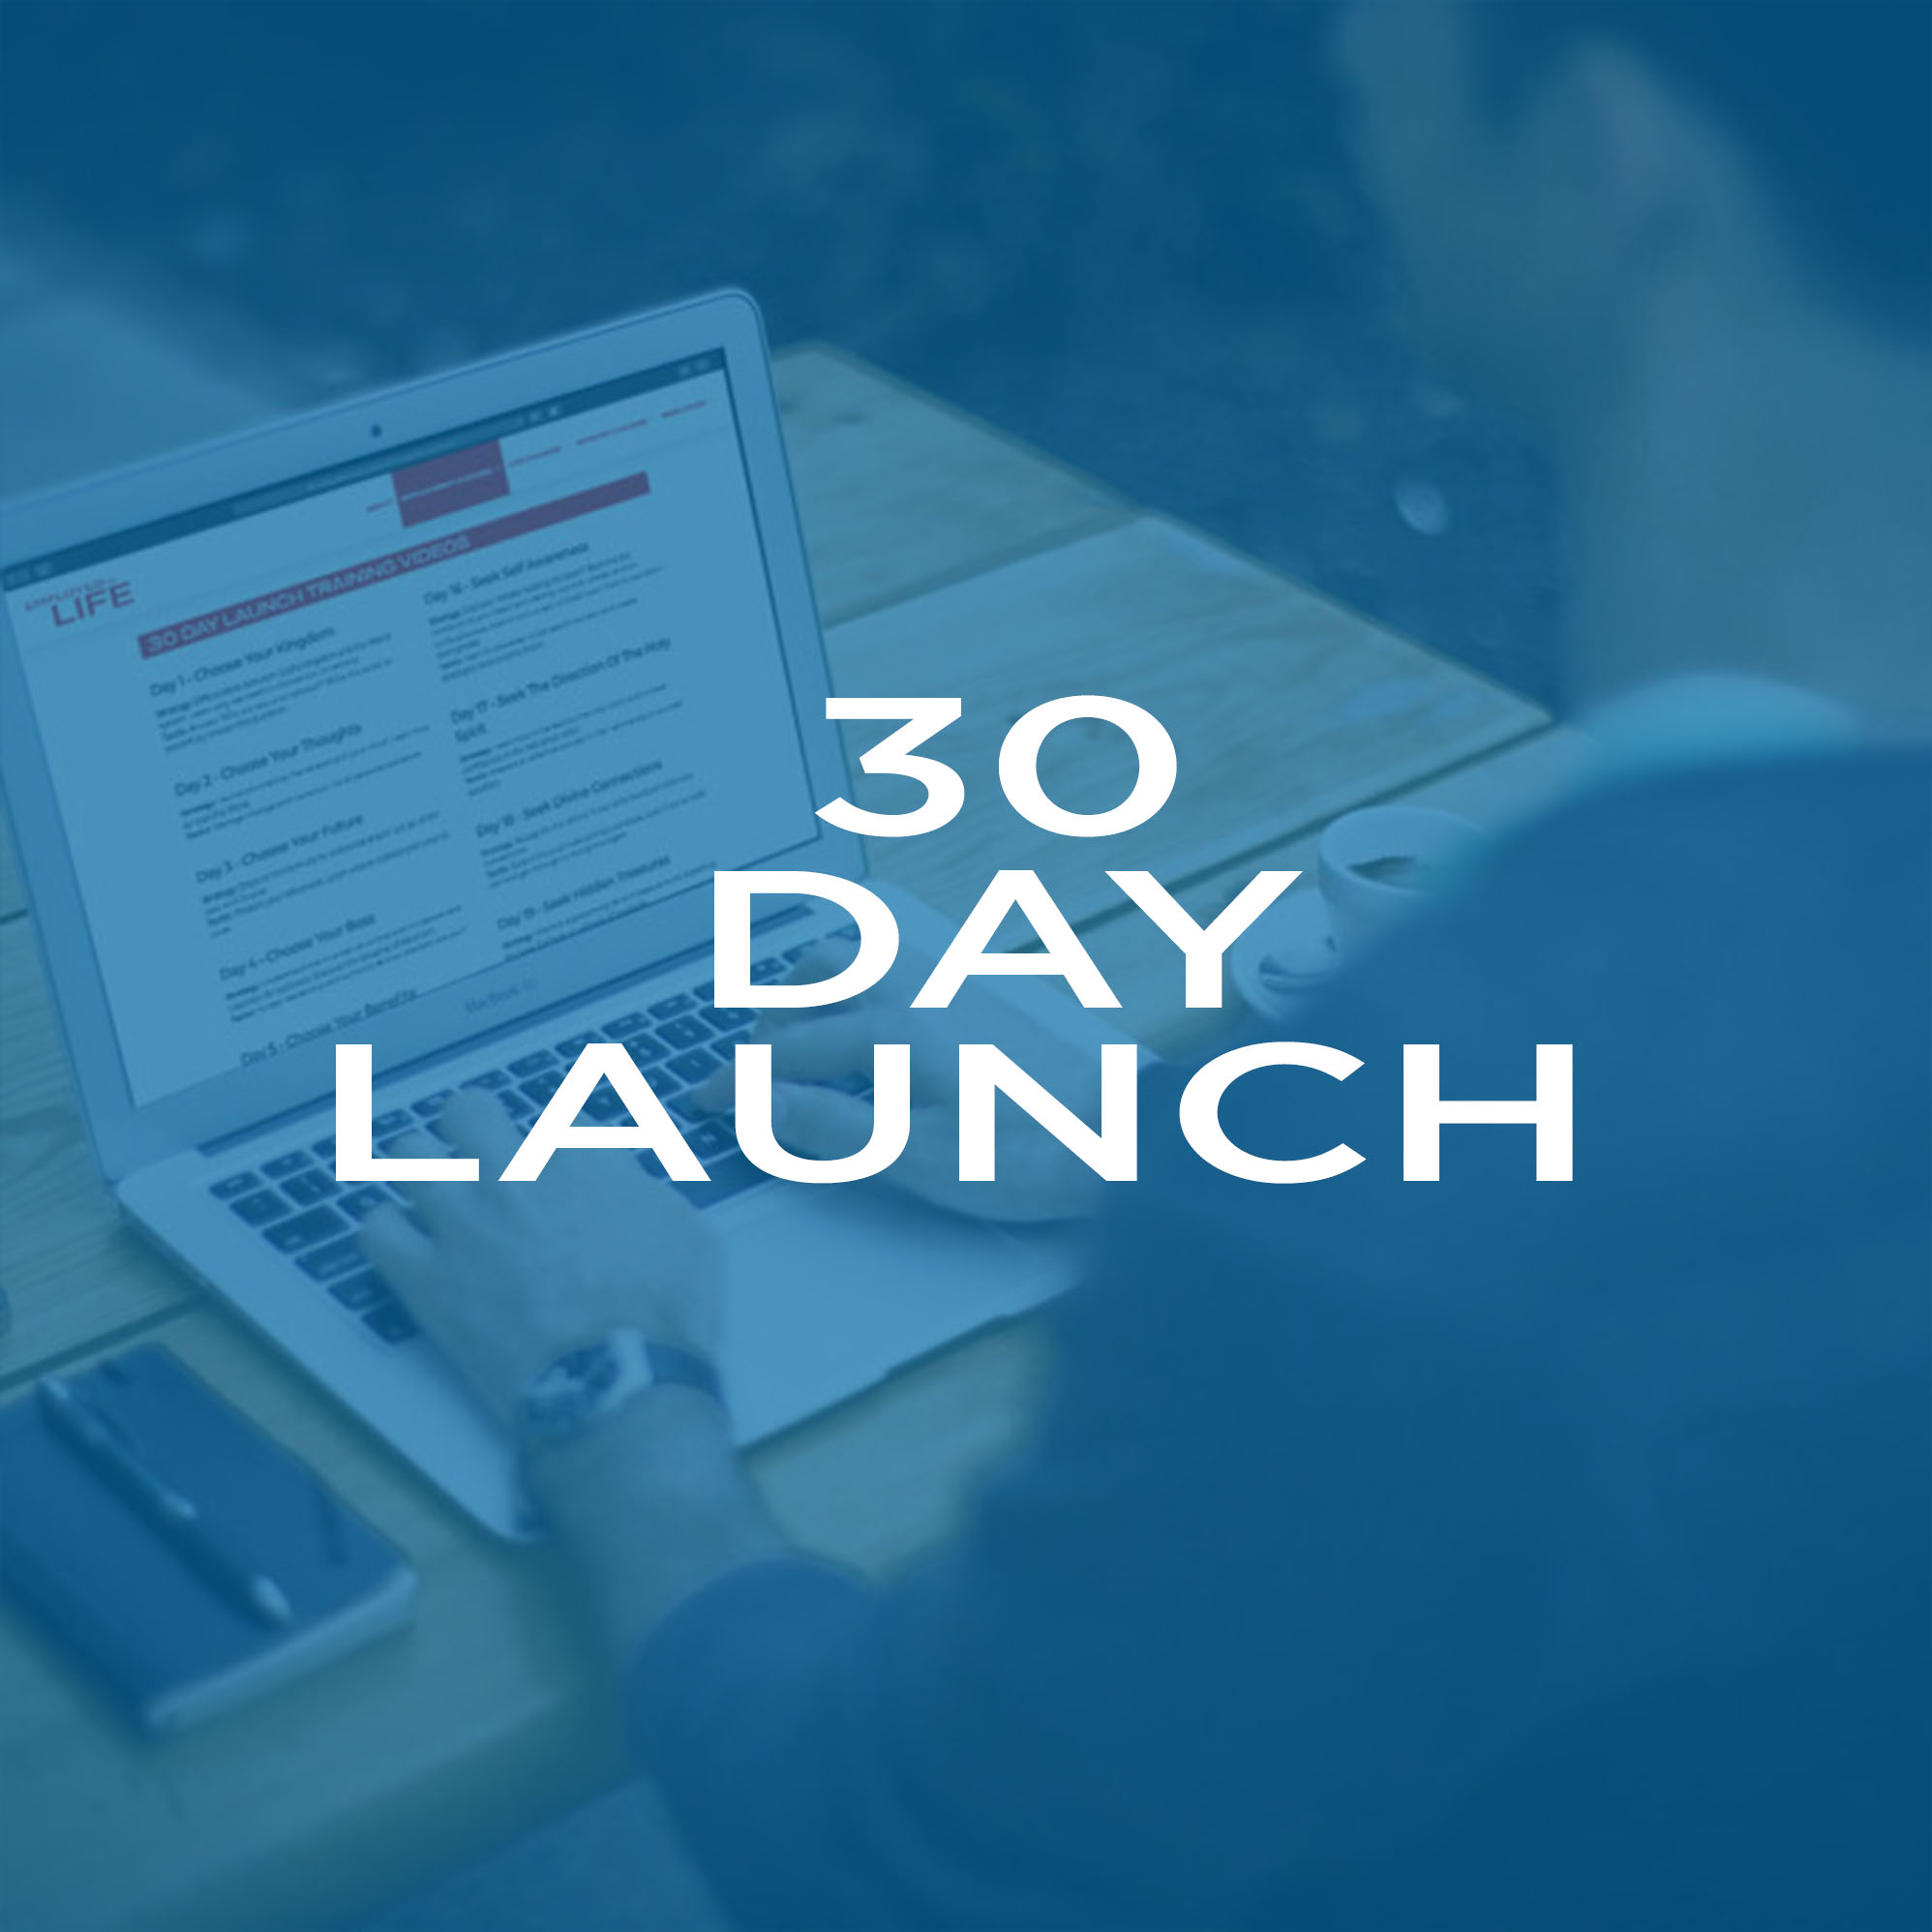 30 Day Launch